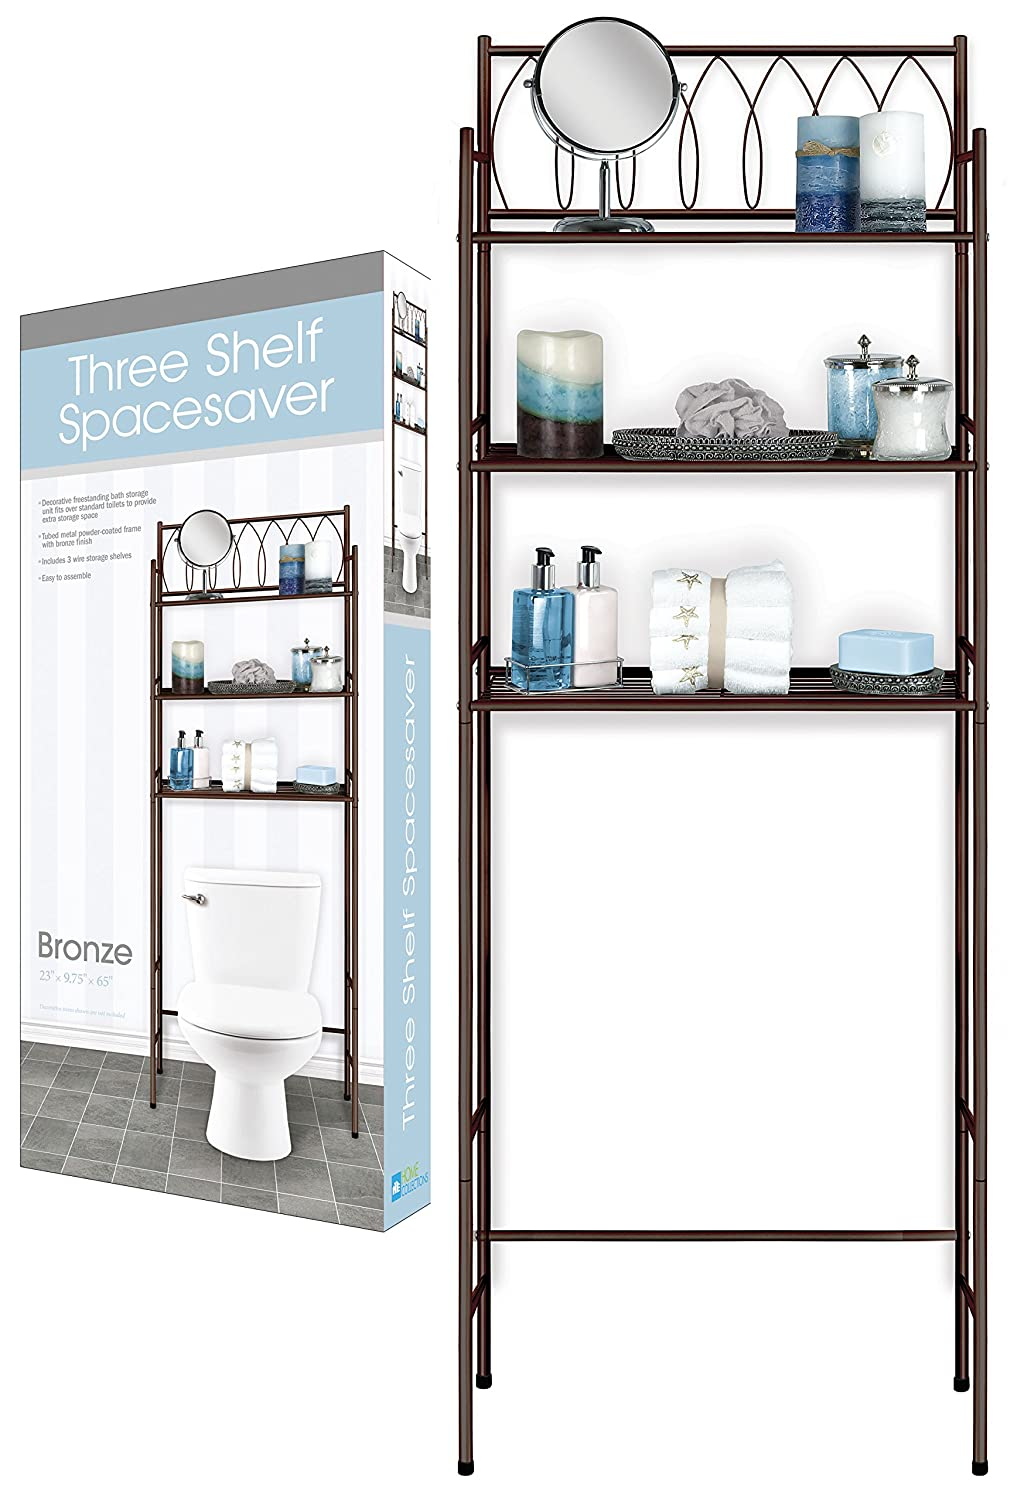 DINY Home Collections 3 Shelf Over The Toilet Spacesaver Easy to Assemble (Bronze) 65